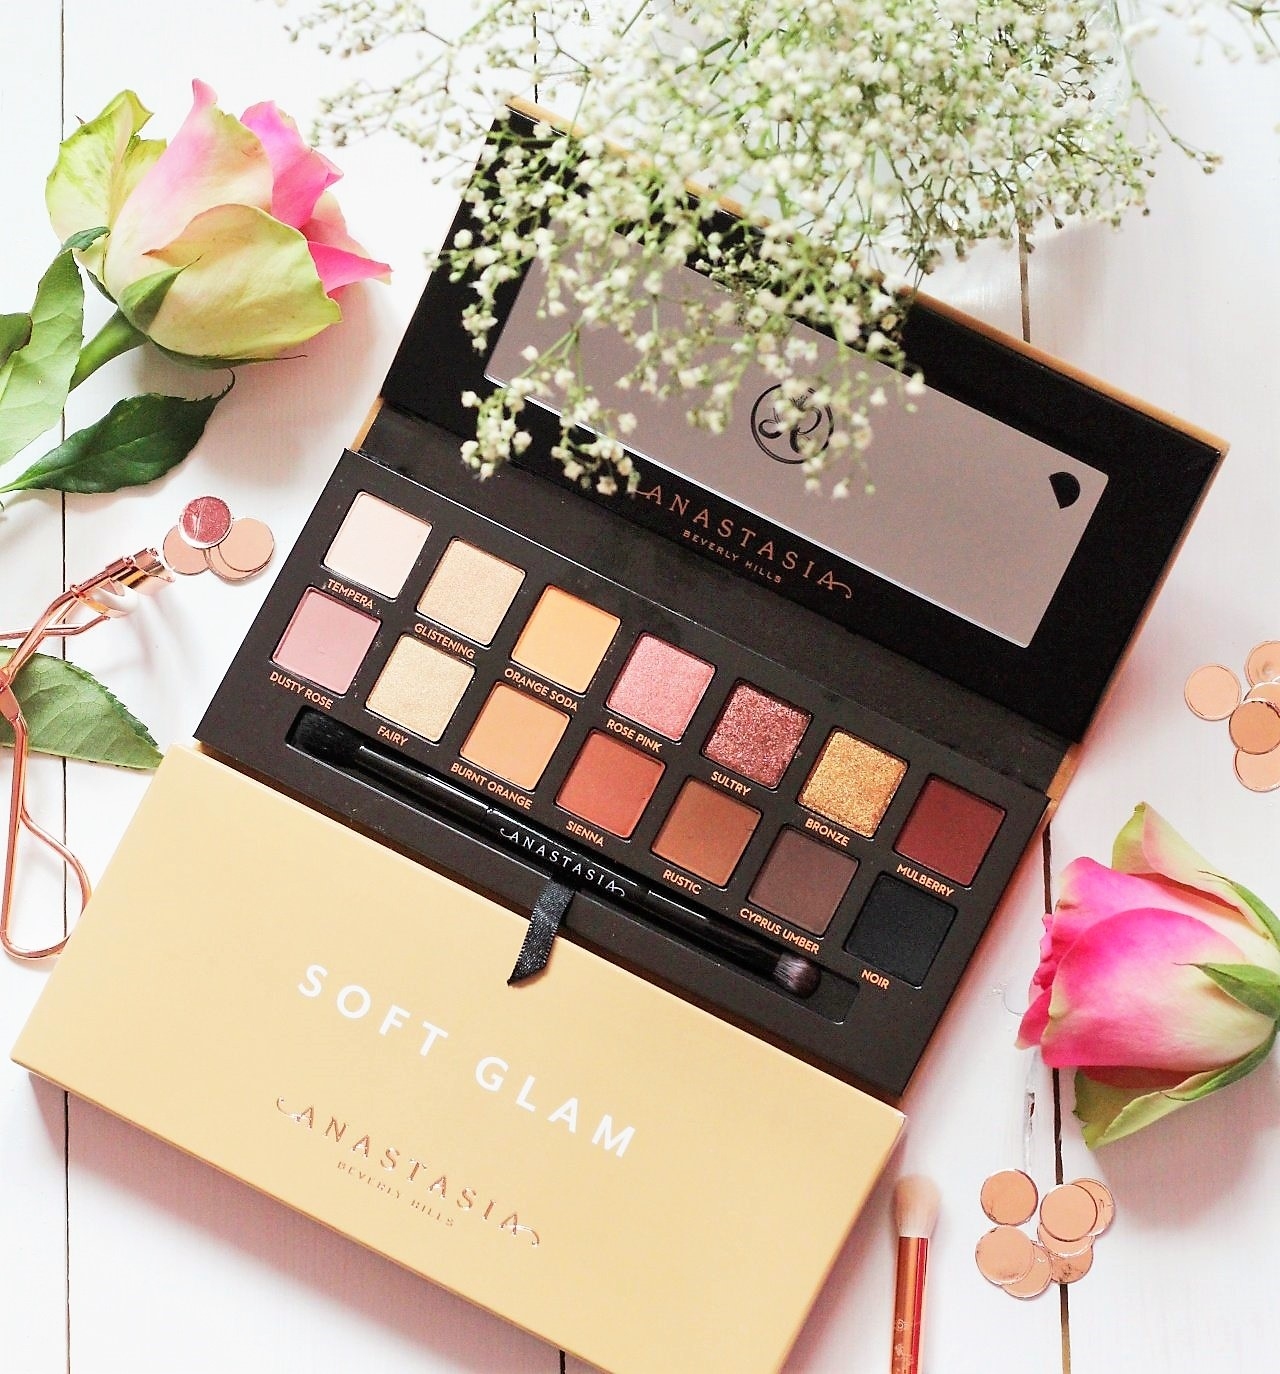 Anastasia Beverly Hills Soft Glam Eyeshadow Palette Review and Swatches 9 (2).jpeg